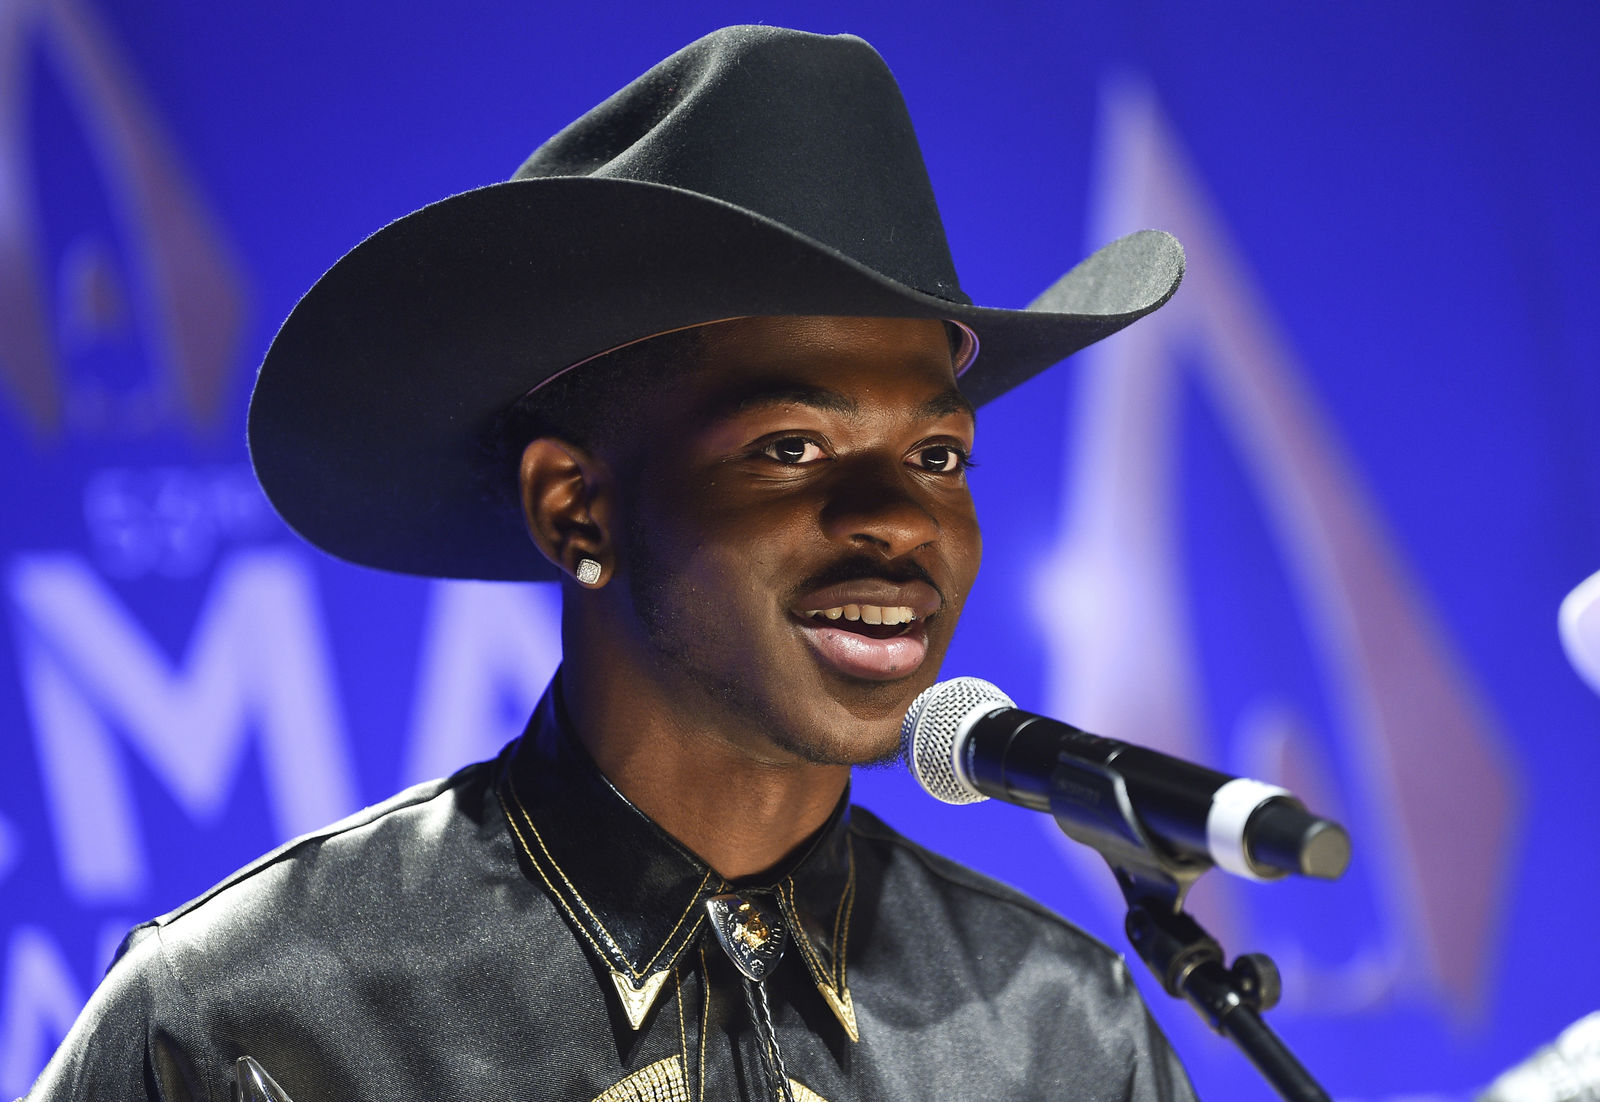 FILE - This Nov. 13, 2019 file photo shows rapper Lil Nas X after winning the musical event of the year award at the 53rd annual CMA Awards in Nashville, Tenn. (Photo by Evan Agostini/Invision/AP, File)